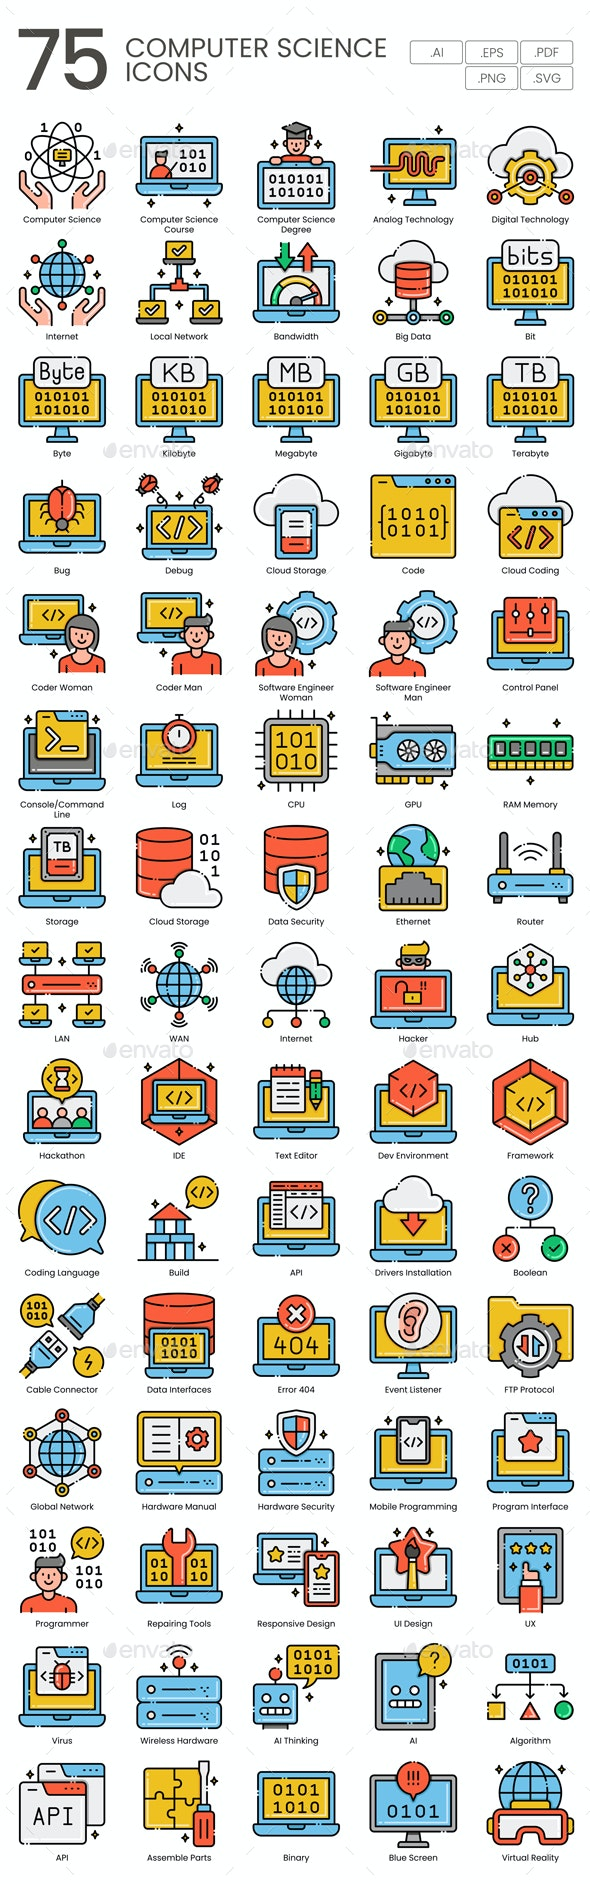 75 Computer Science Icons | Aesthetics Series - Icons